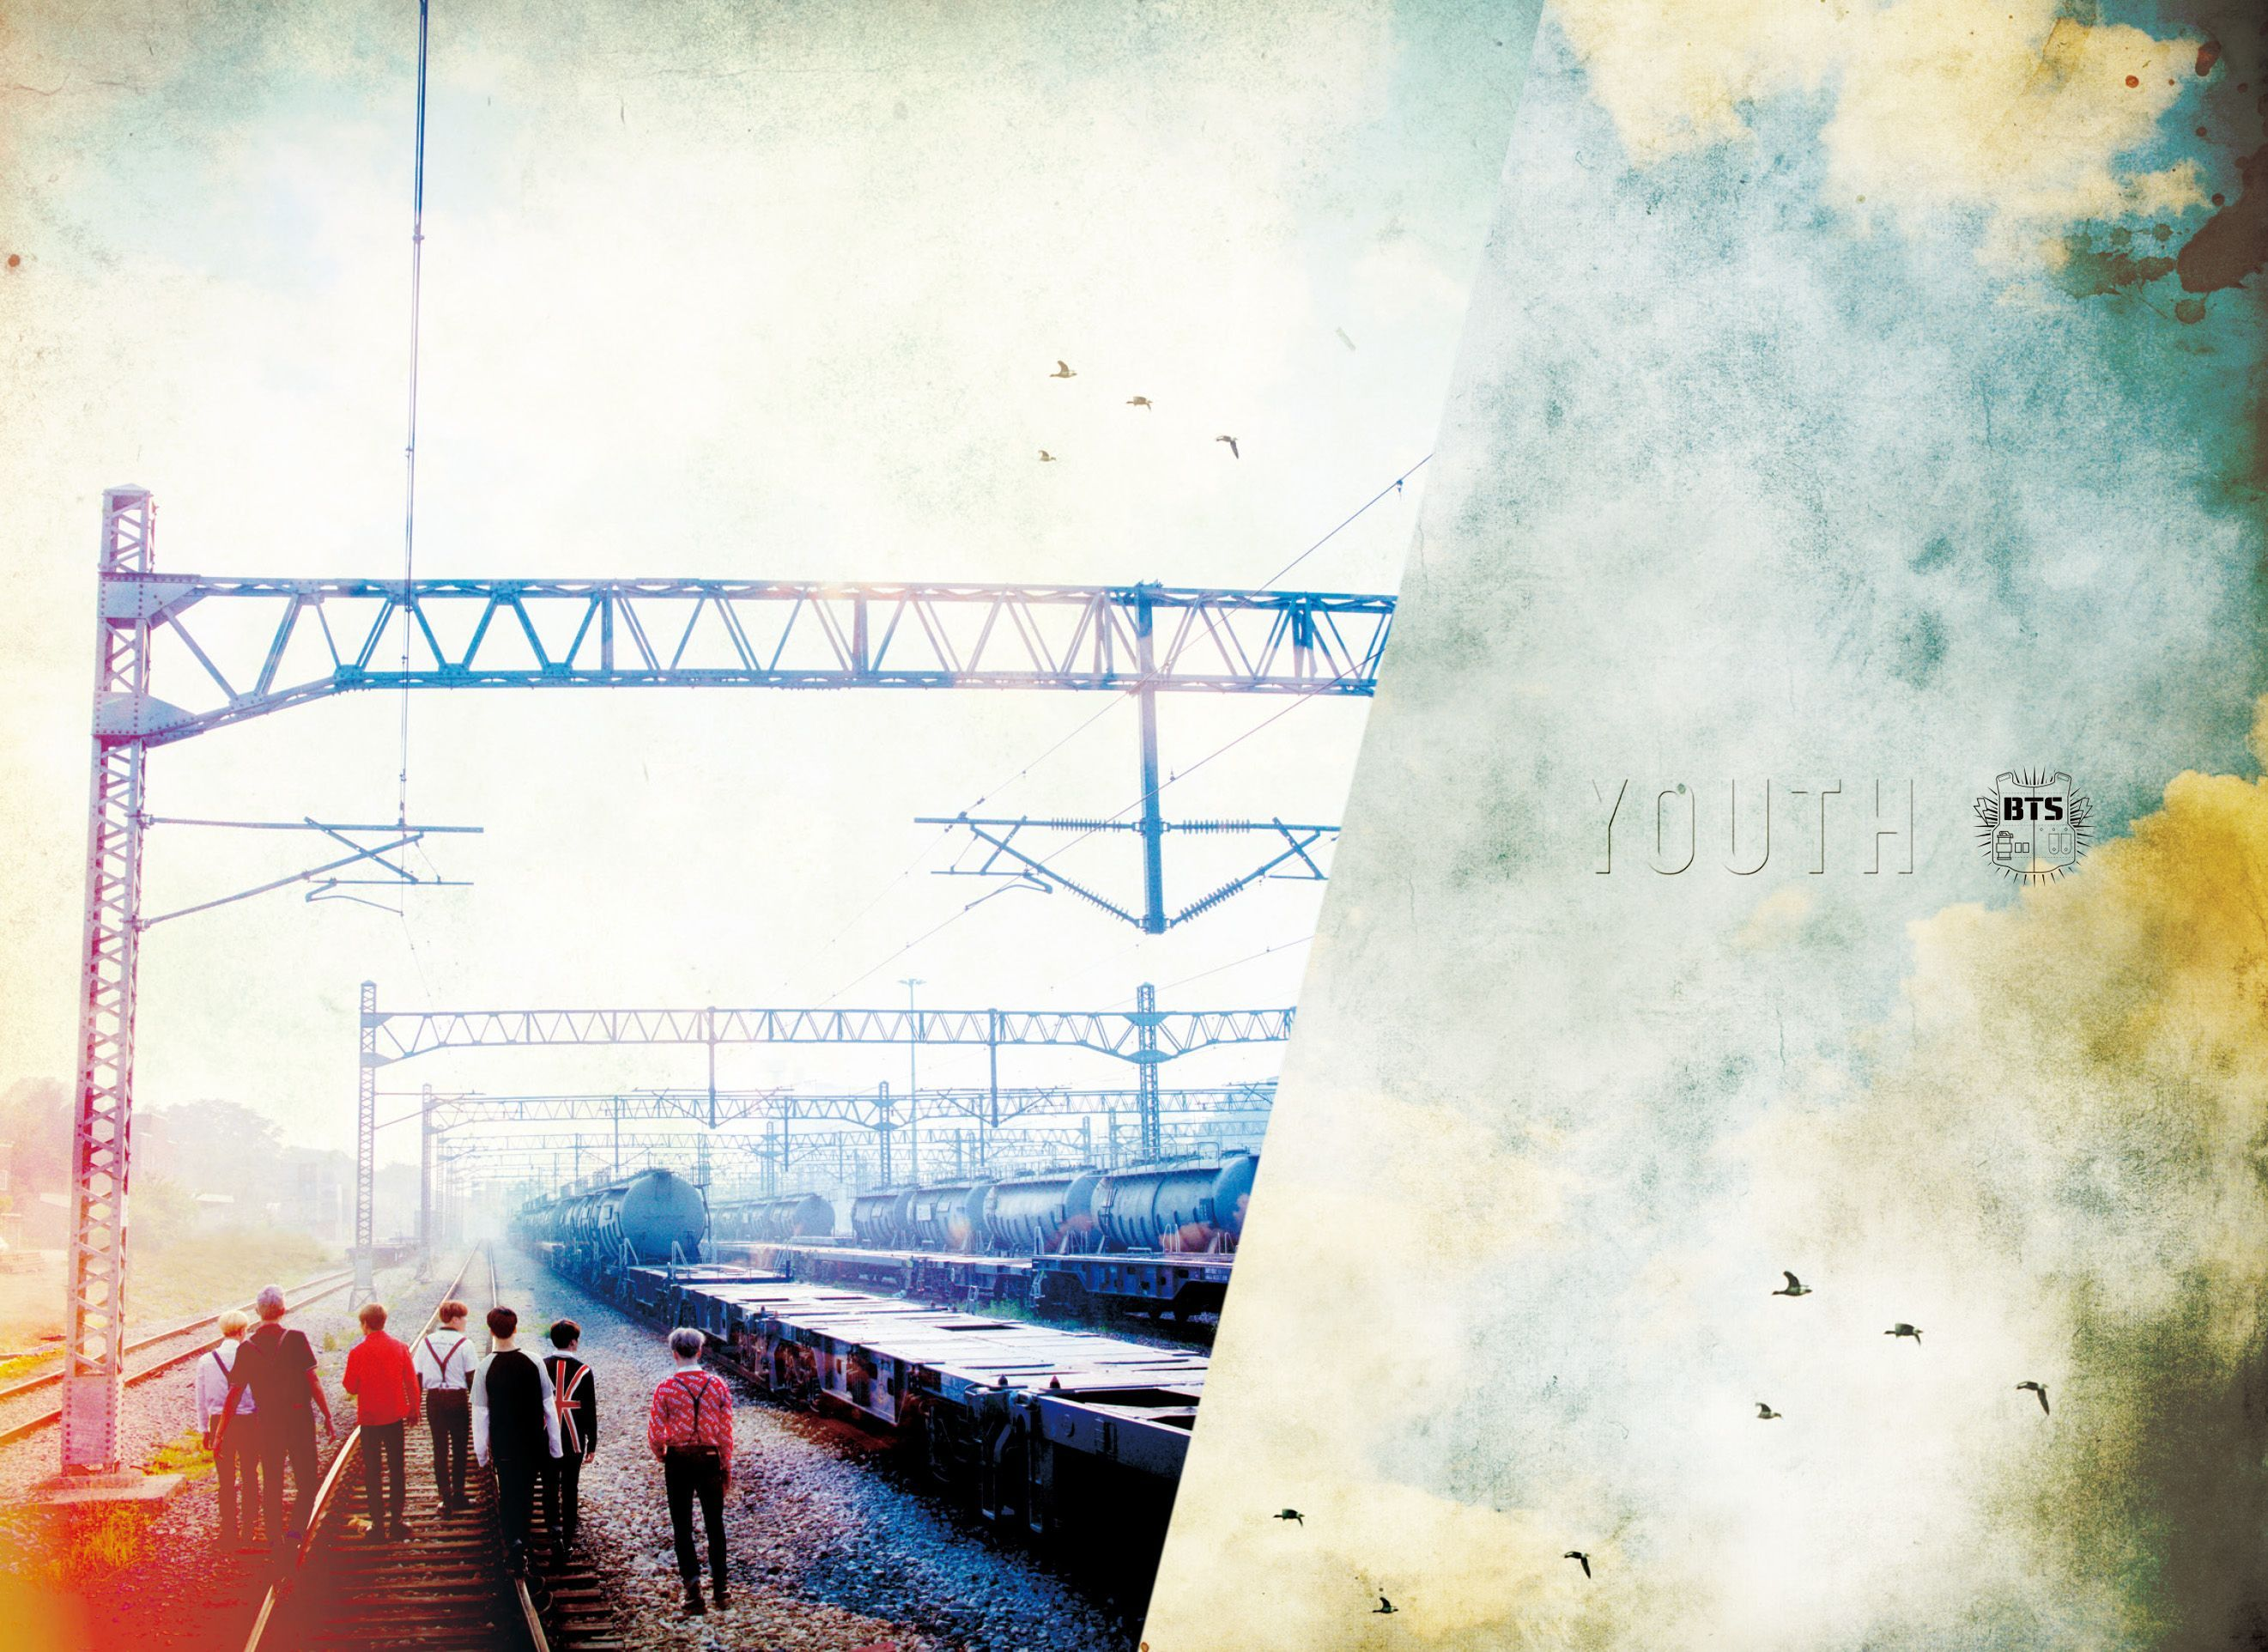 Bts Youth Wallpapers Top Free Bts Youth Backgrounds Wallpaperaccess